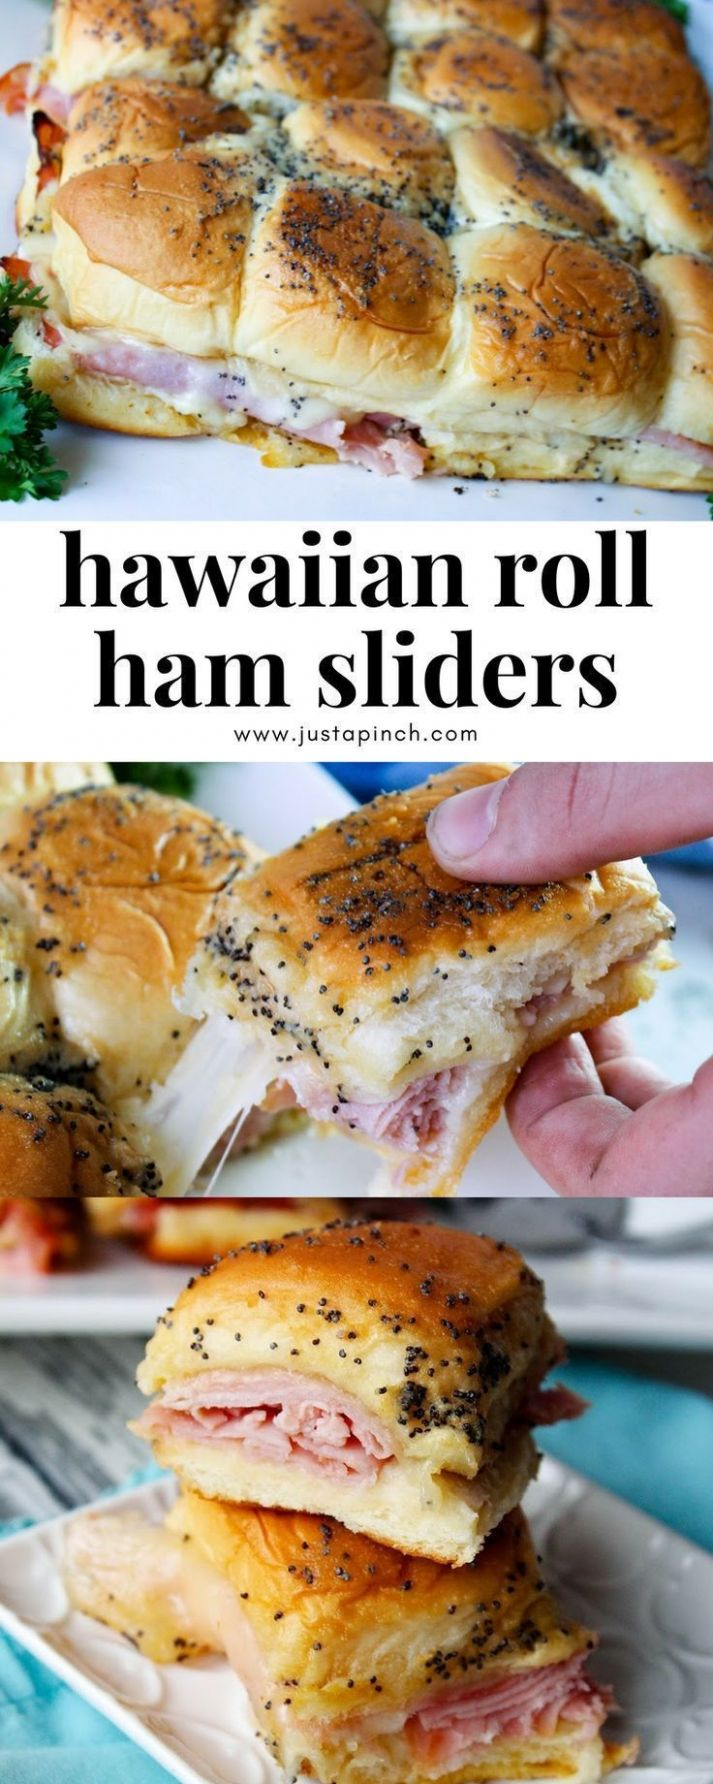 Hawaiian Roll Ham Sliders